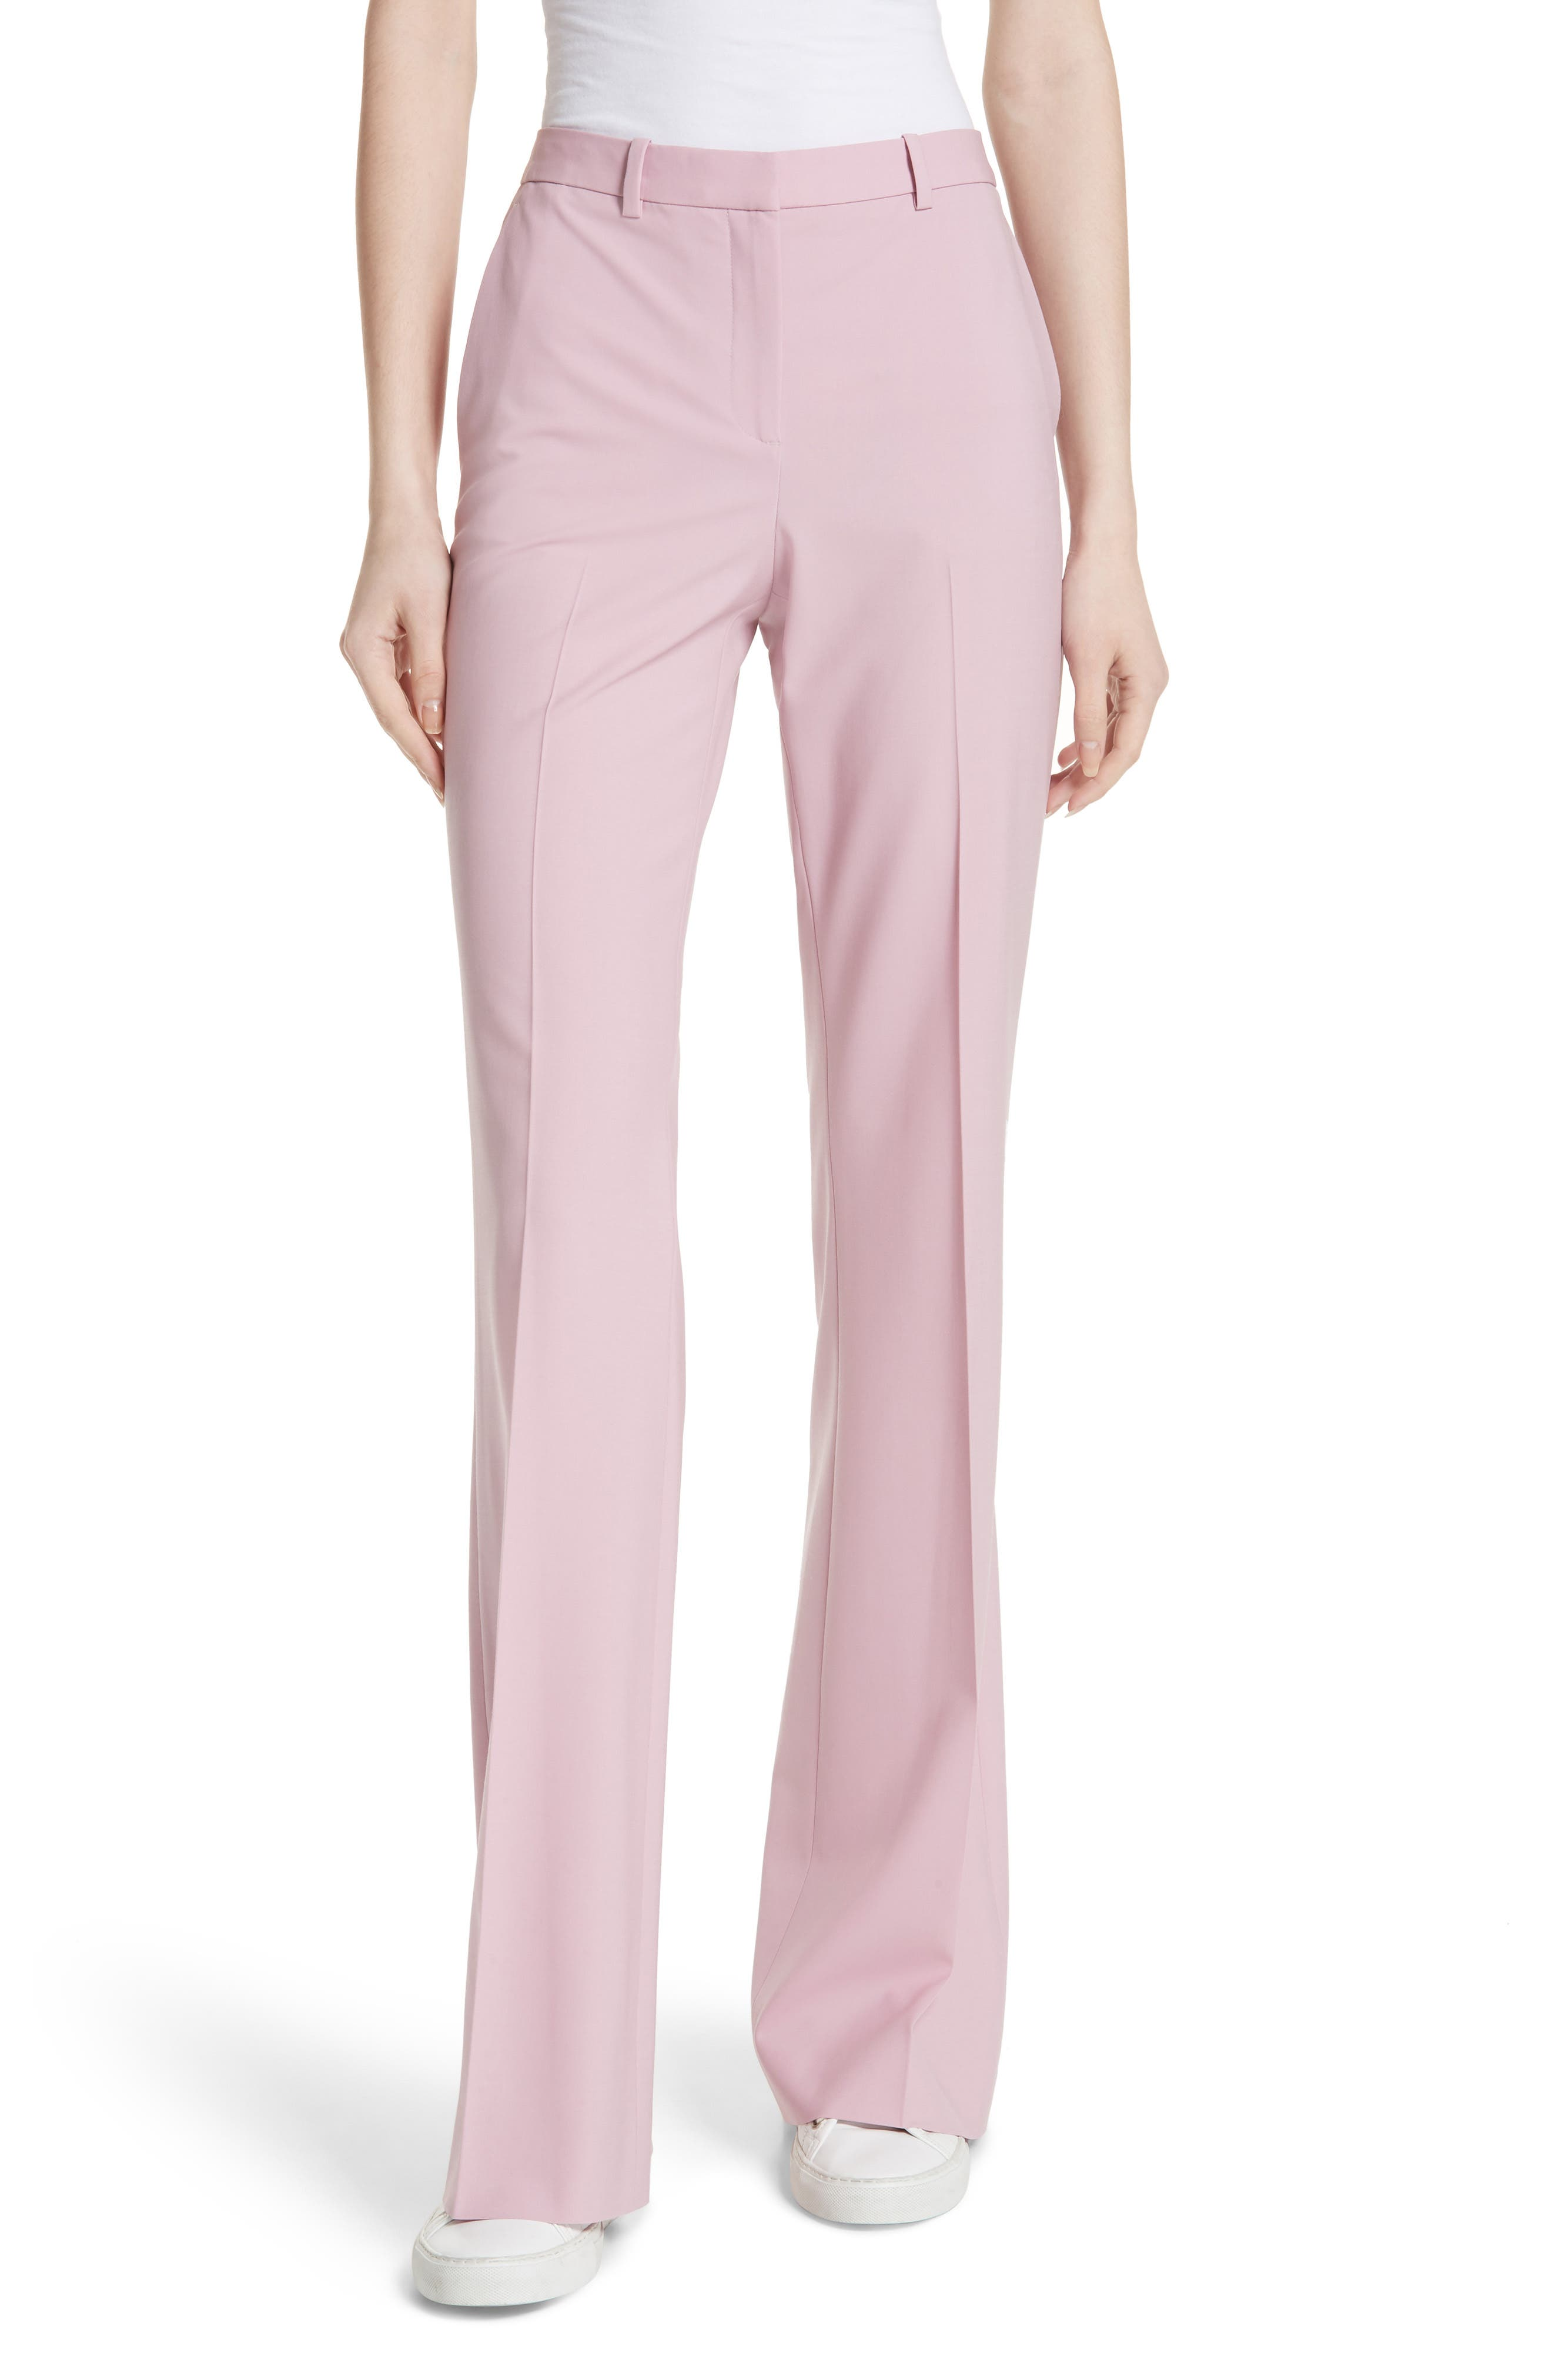 Demitria 2 Stretch Wool Suit Pants,                             Main thumbnail 1, color,                             Berry Tint